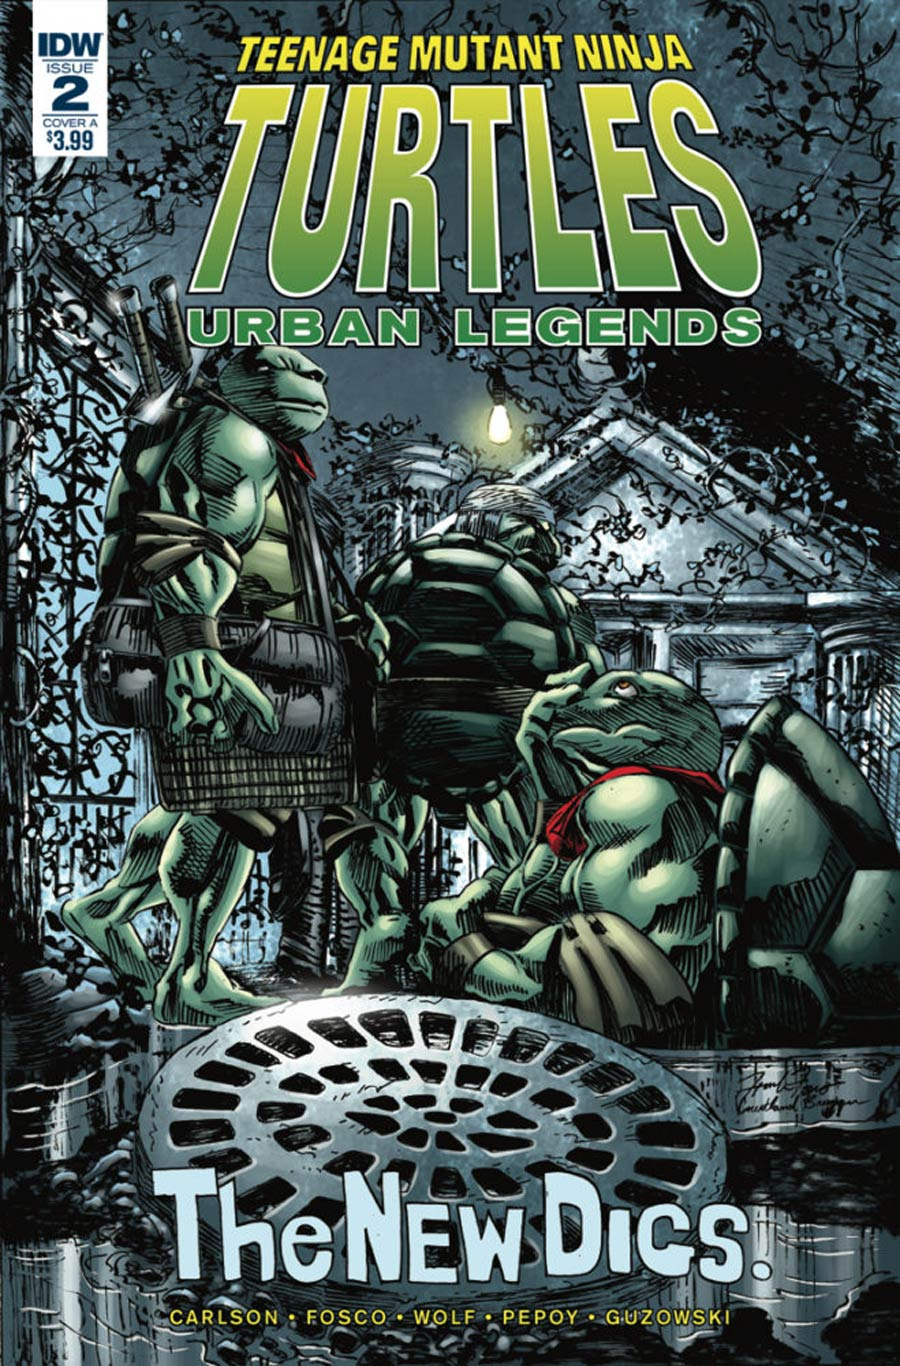 Teenage Mutant Ninja Turtles Urban Legends #2 Cover A Regular Frank Fosco Cover